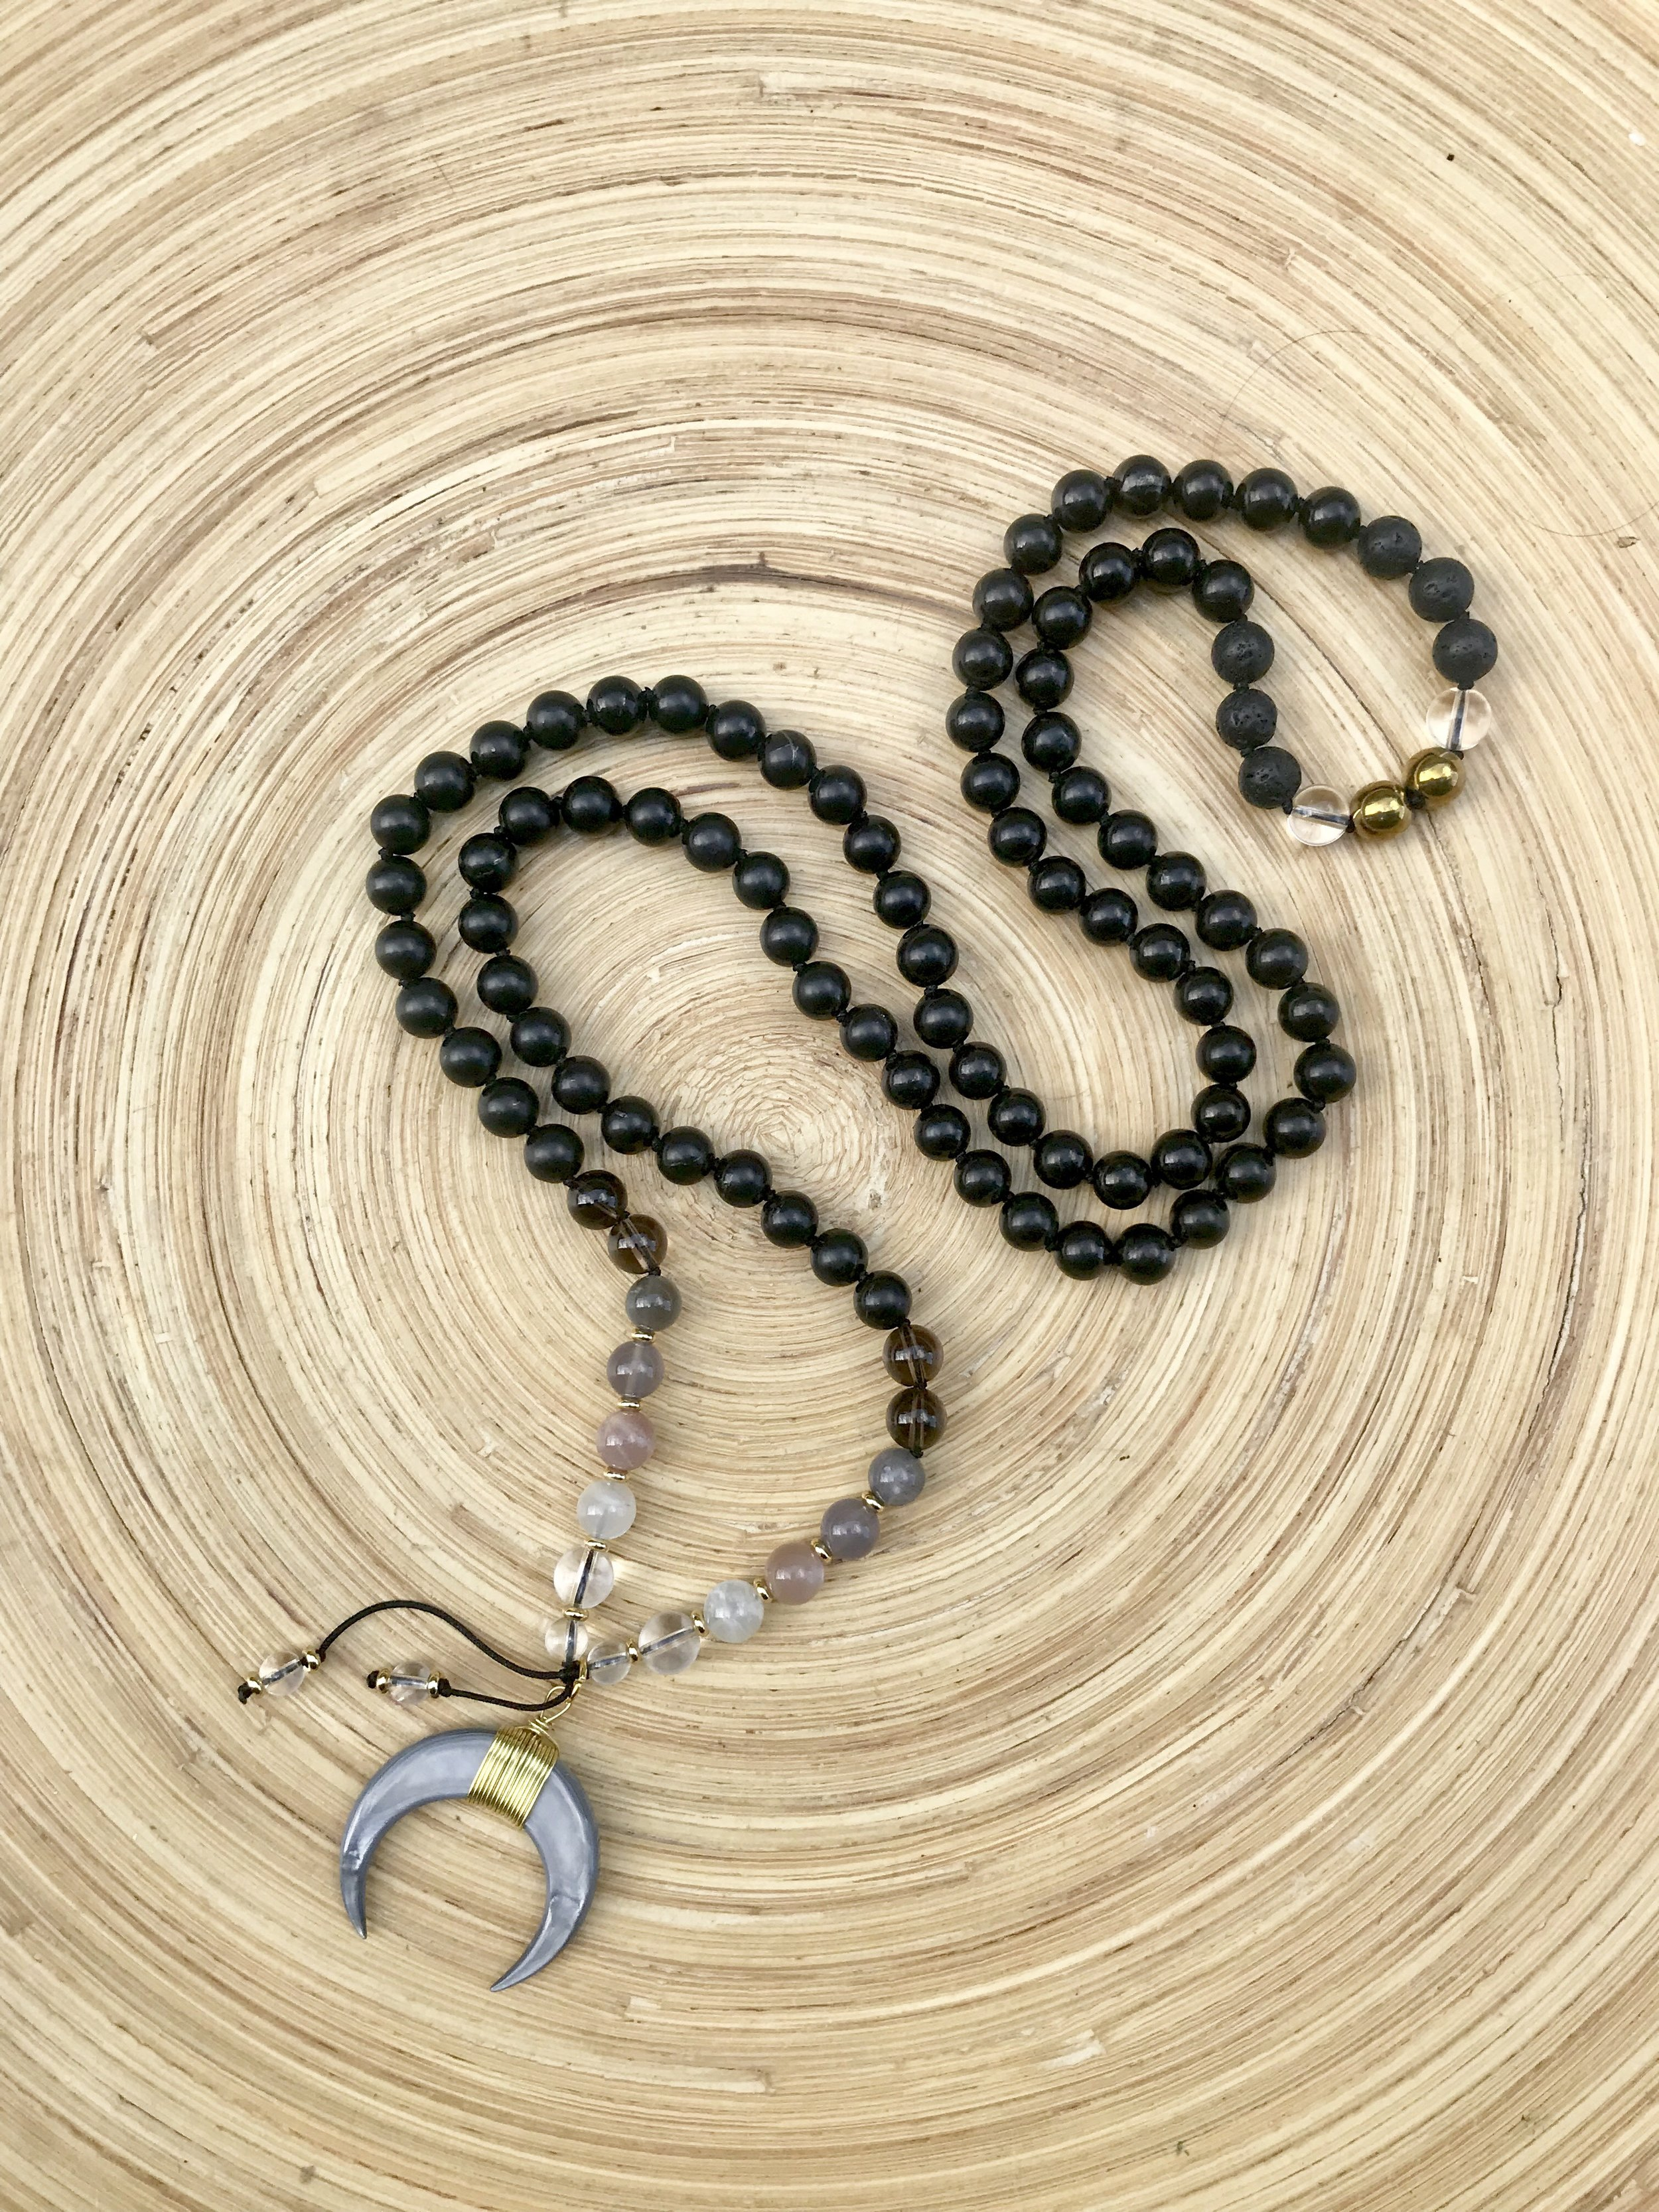 I Am Transformed Mala Bead Necklace made with Shungite and Moonstone